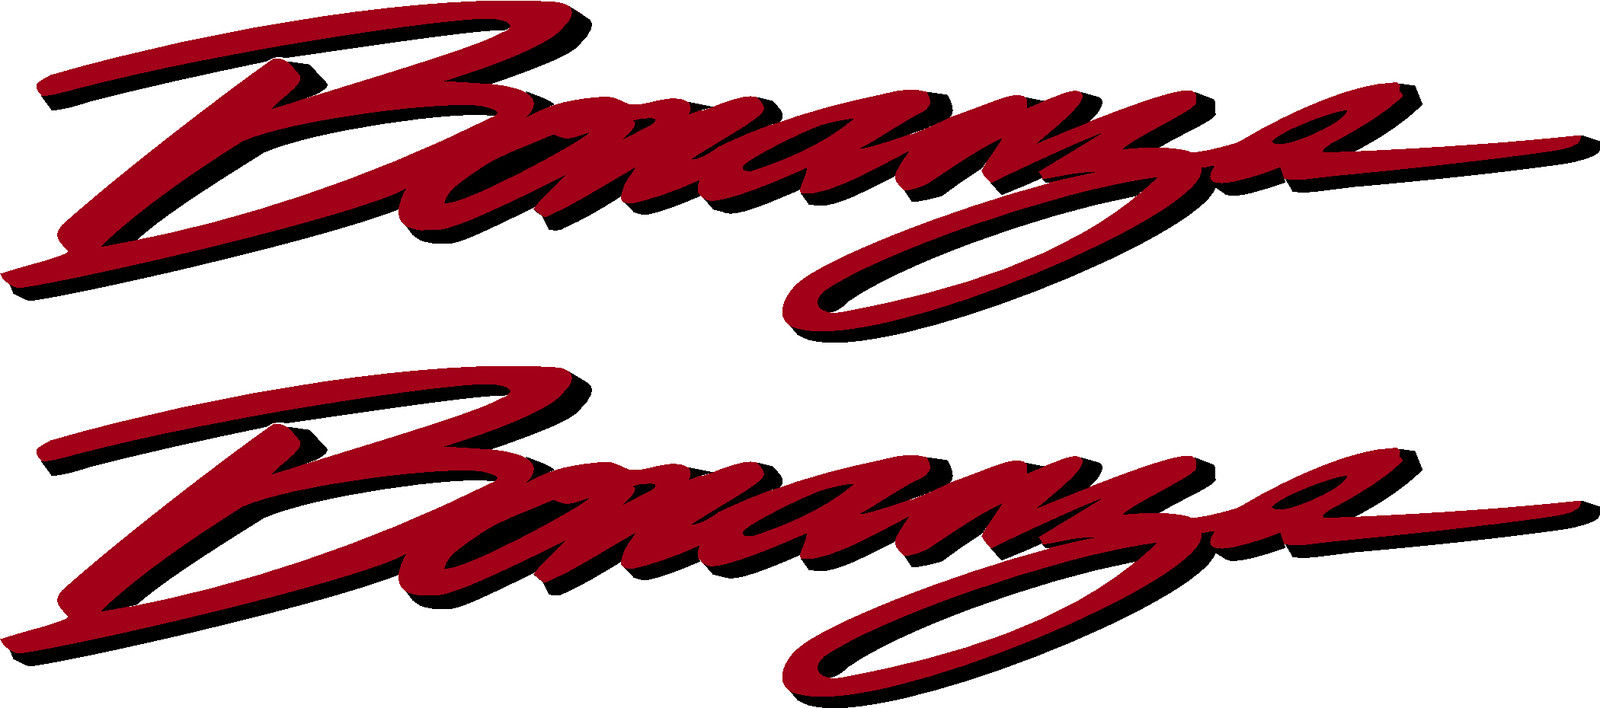 Beechcraft Bonanza Script Pair (2) Logo Decal.